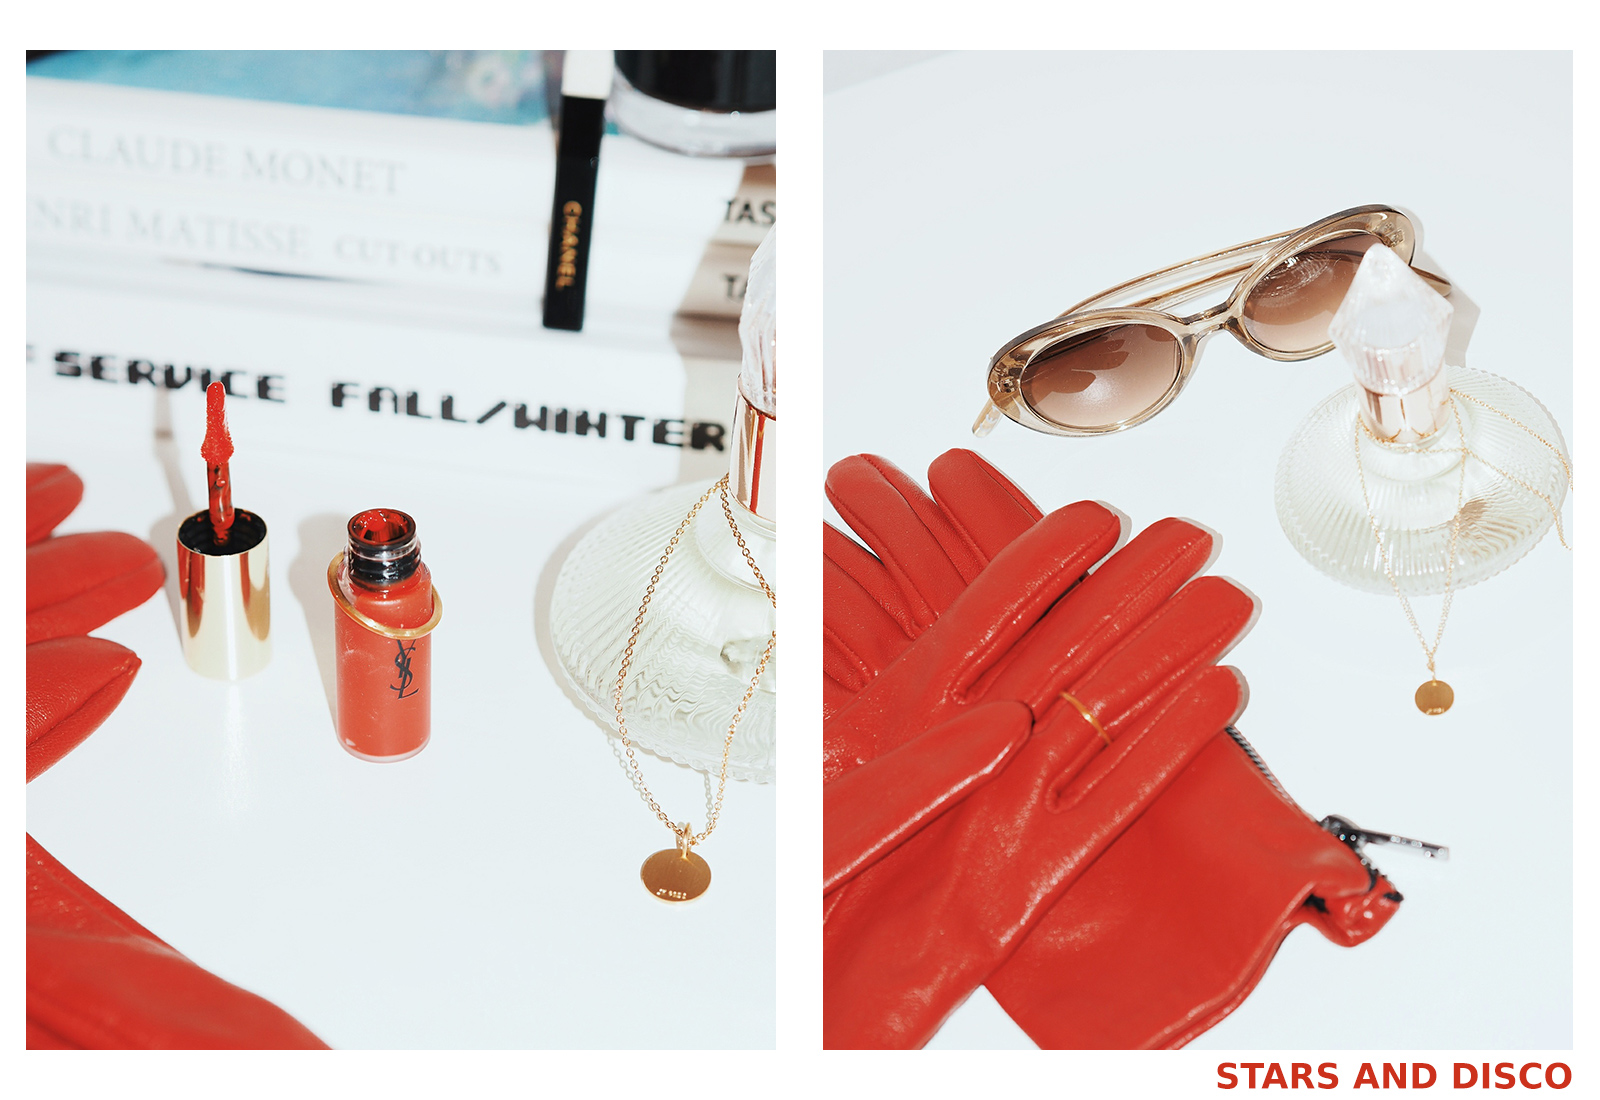 stars-and-disco-jane-koenig-jewellery-lovetag-ring-julia-carevic